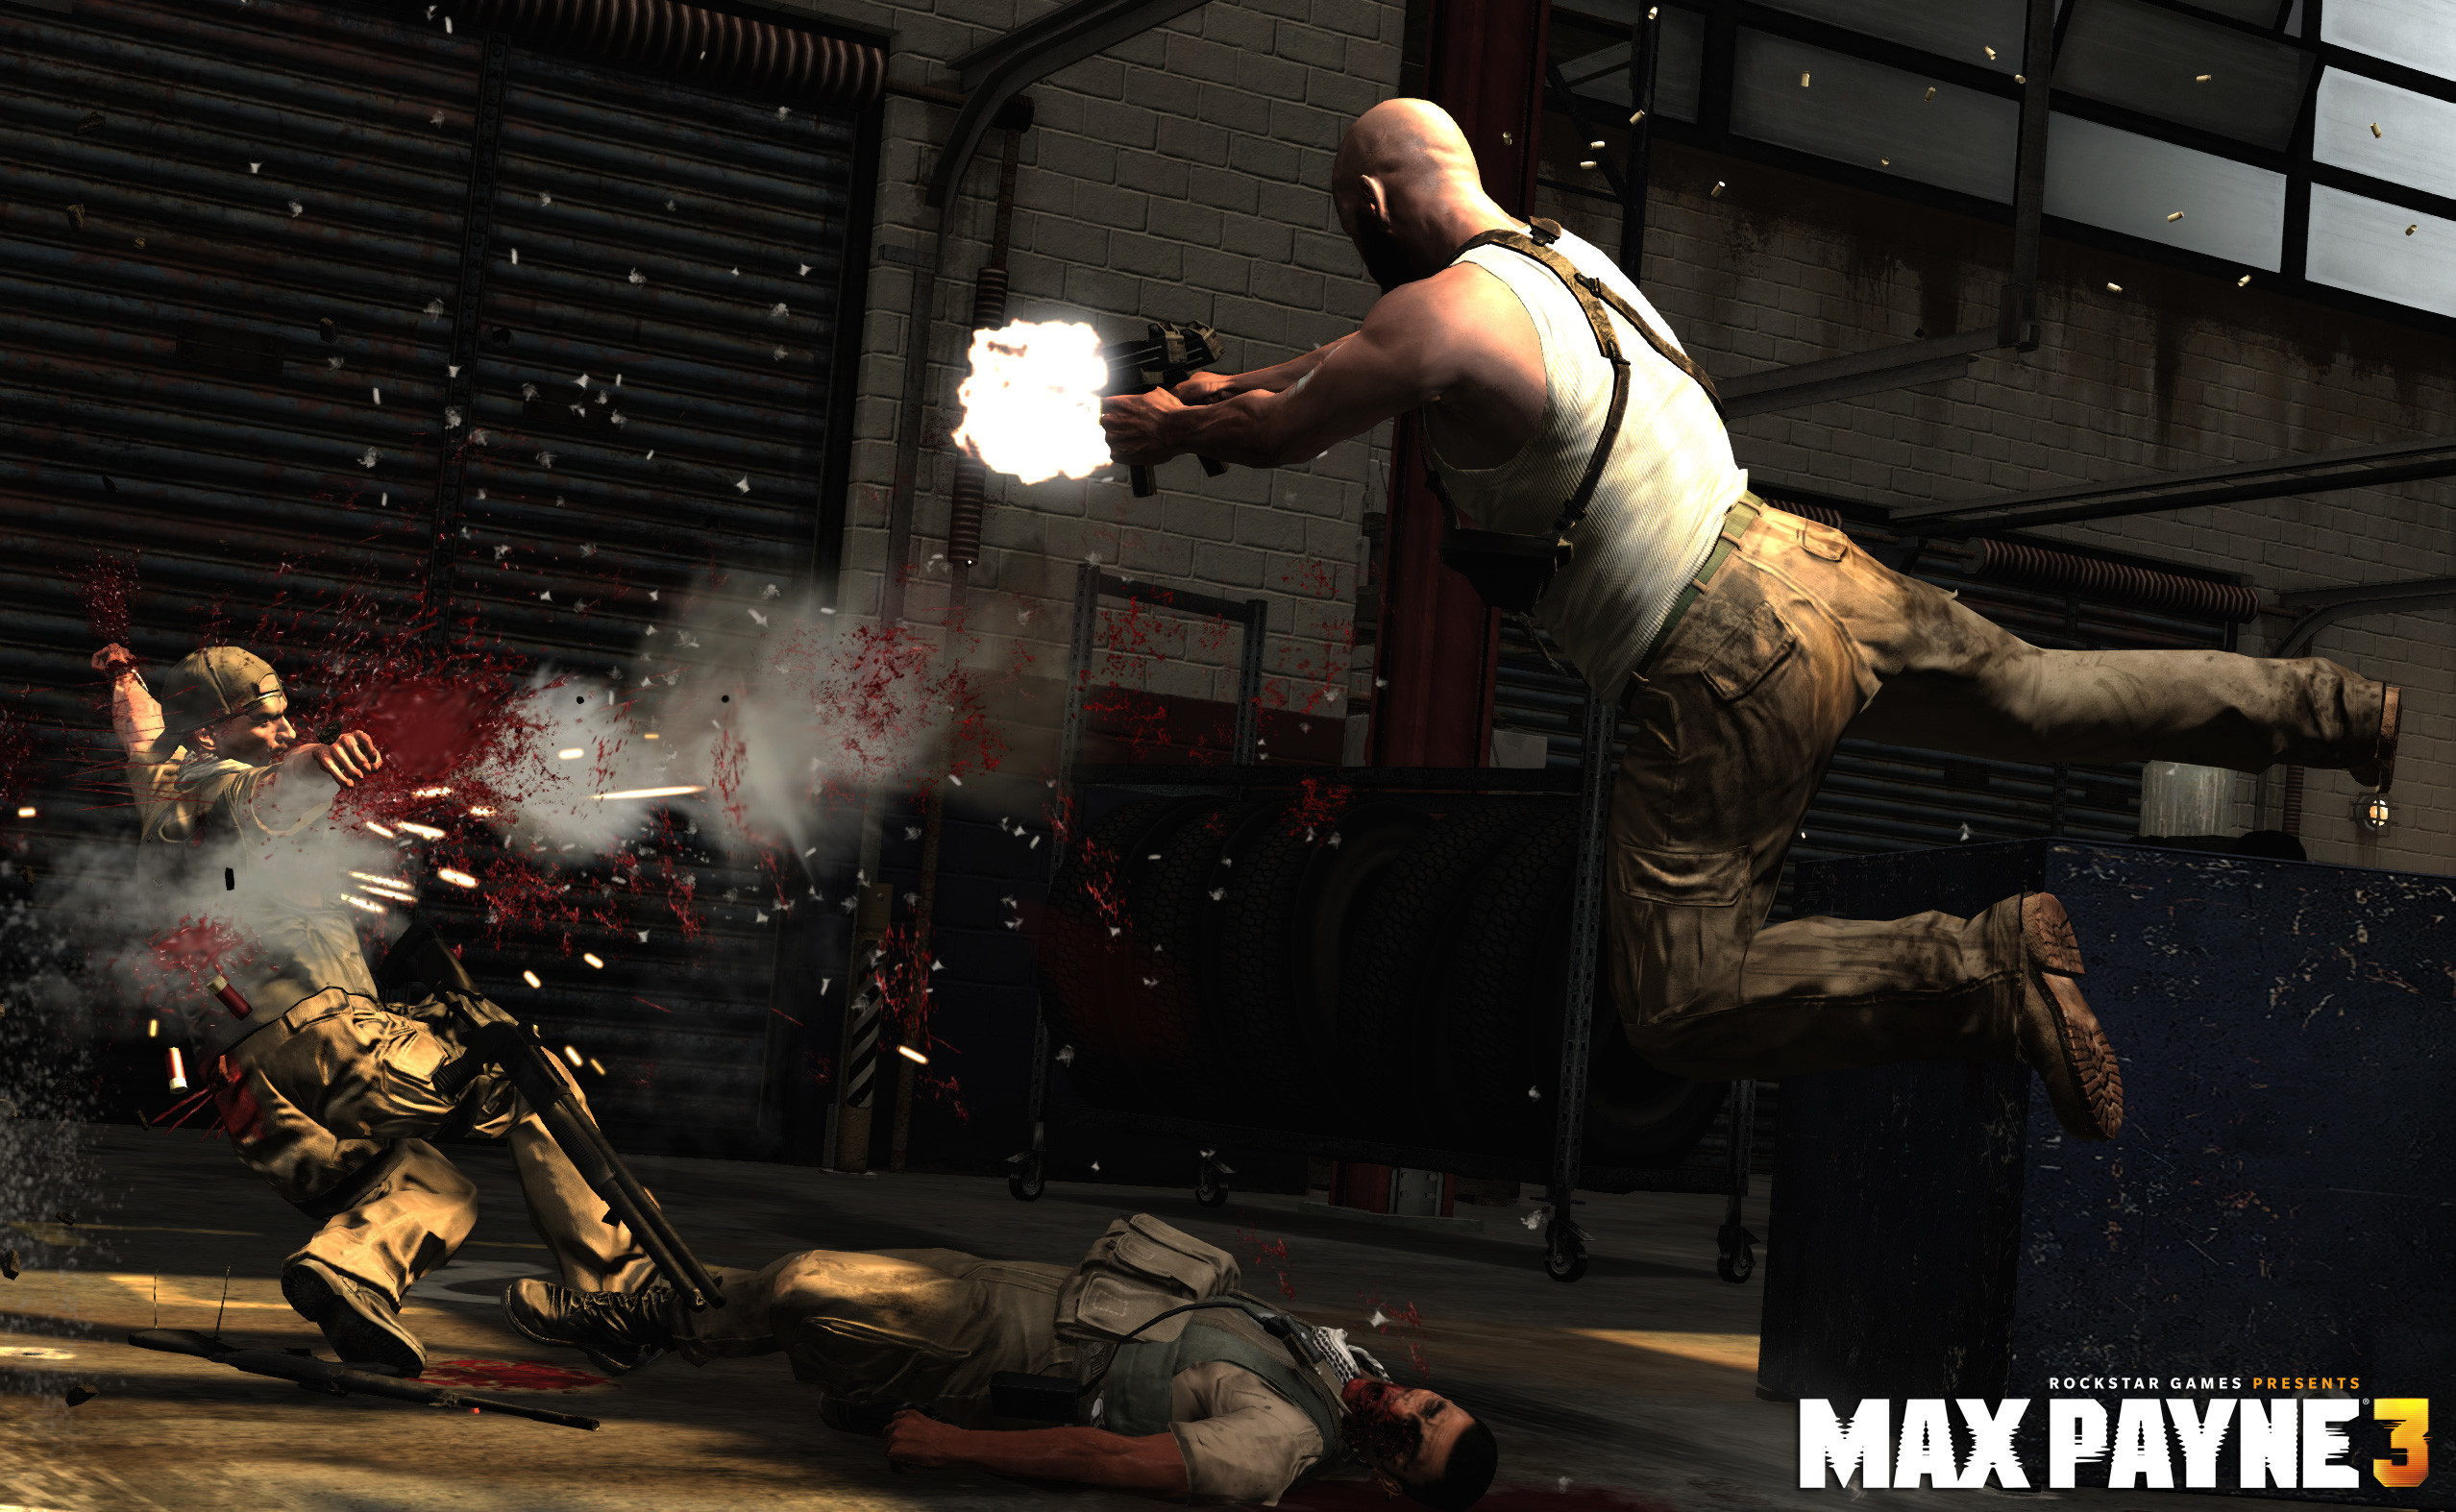 2556x1574 Some awesome wallpapers for the upcoming game Max Payne 3.